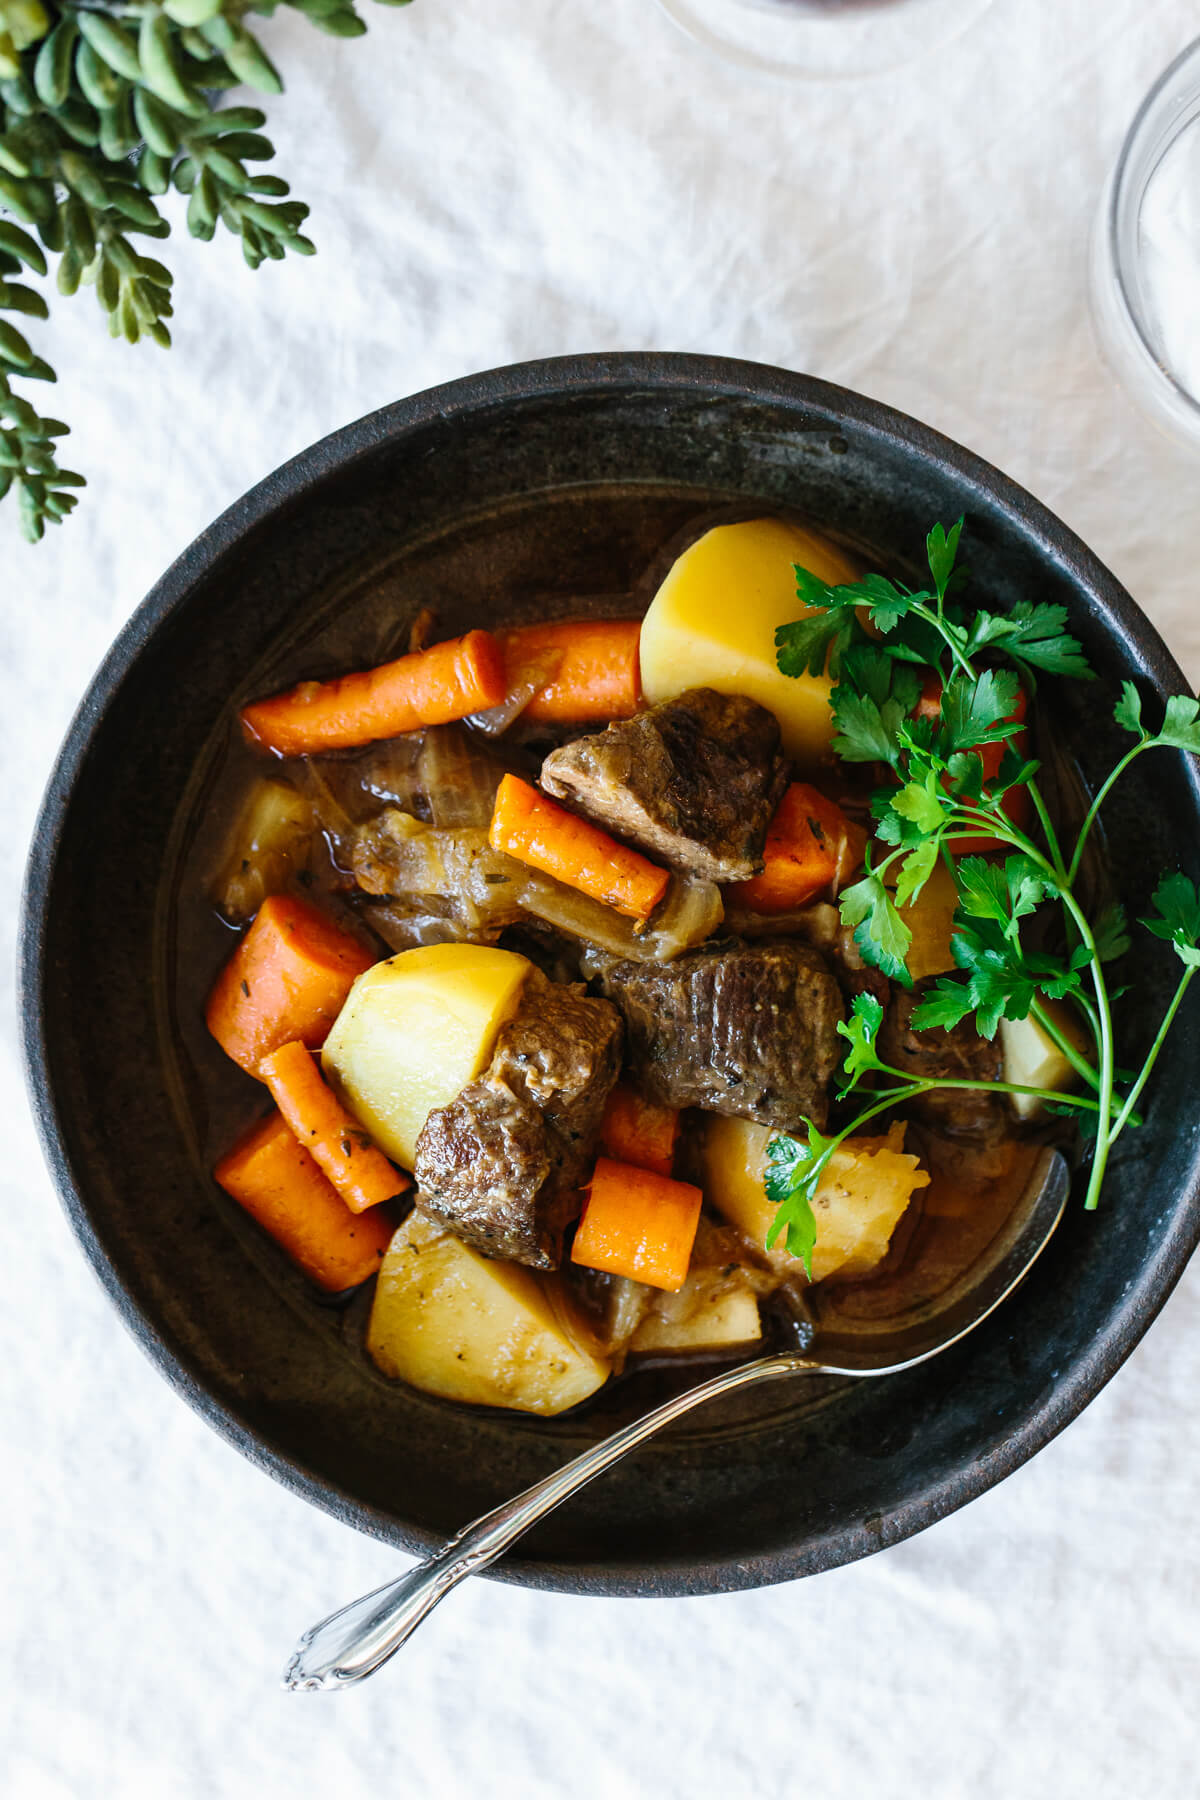 Lamb stew in a bowl.